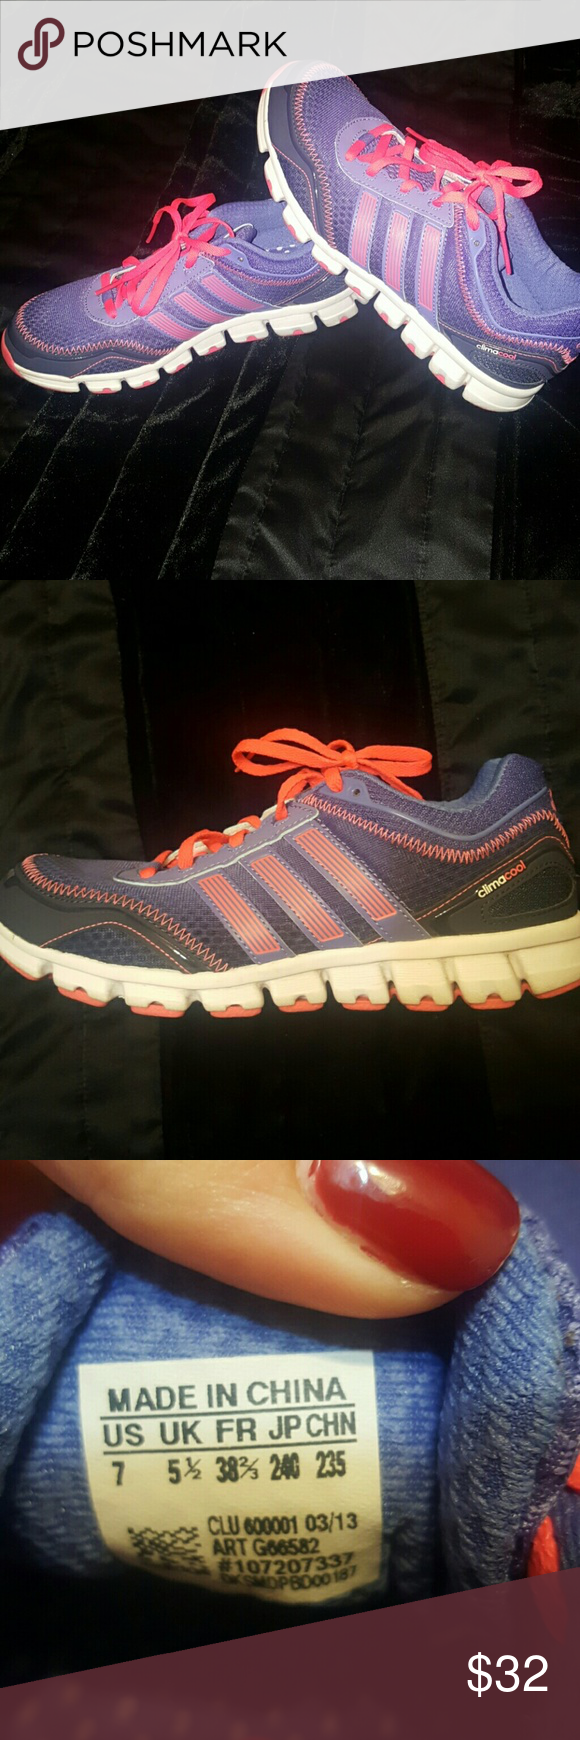 Women's Adidas Climacool Adidas. Purple and hot pink. Worn 3 times! Like brand new! Adidas Shoes Athletic Shoes